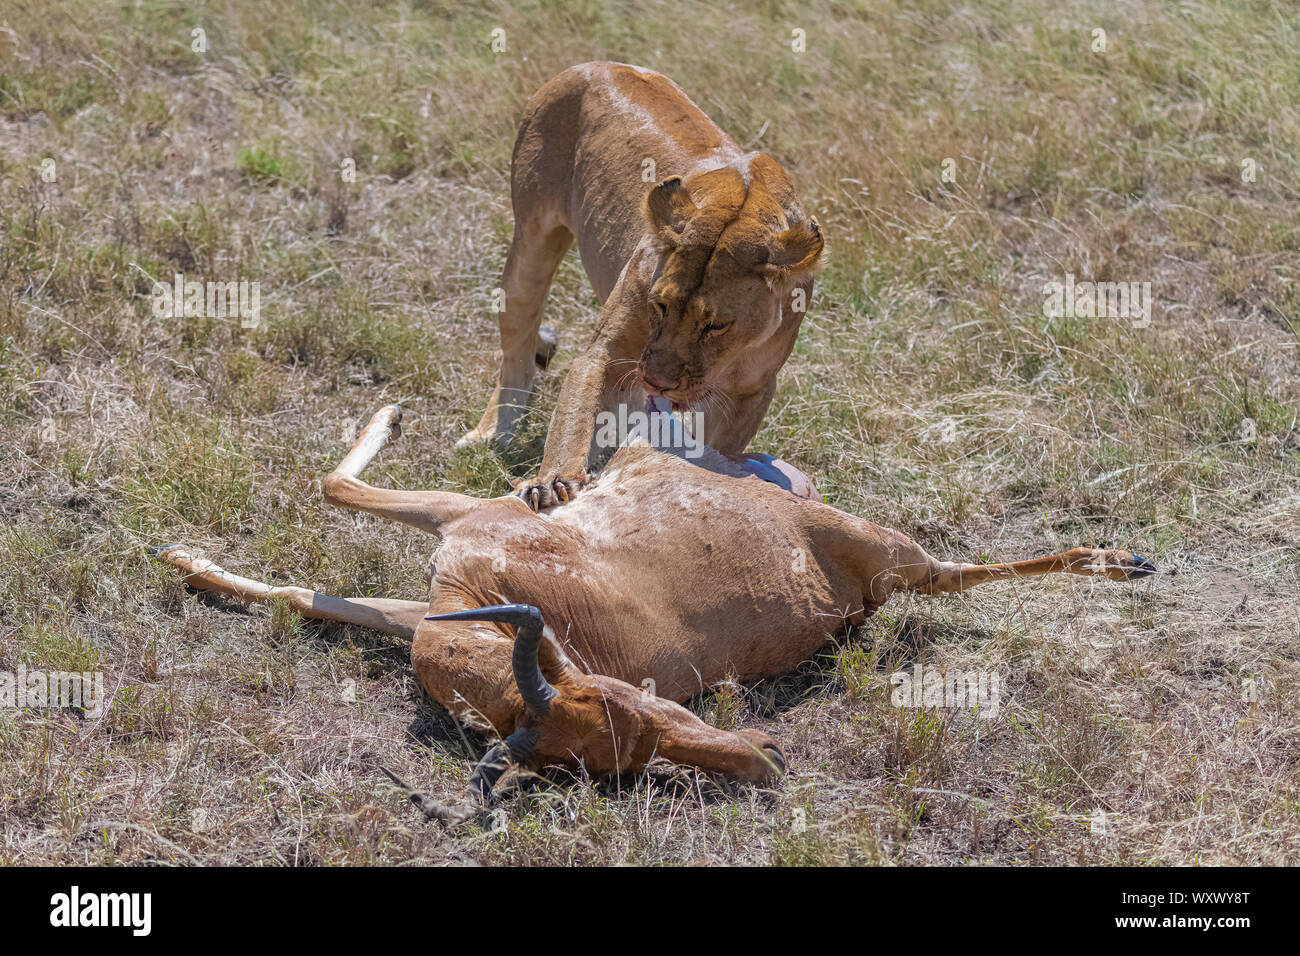 lioness who killed an antelope and is eating it in the savannah in Tanzania Stock Photo